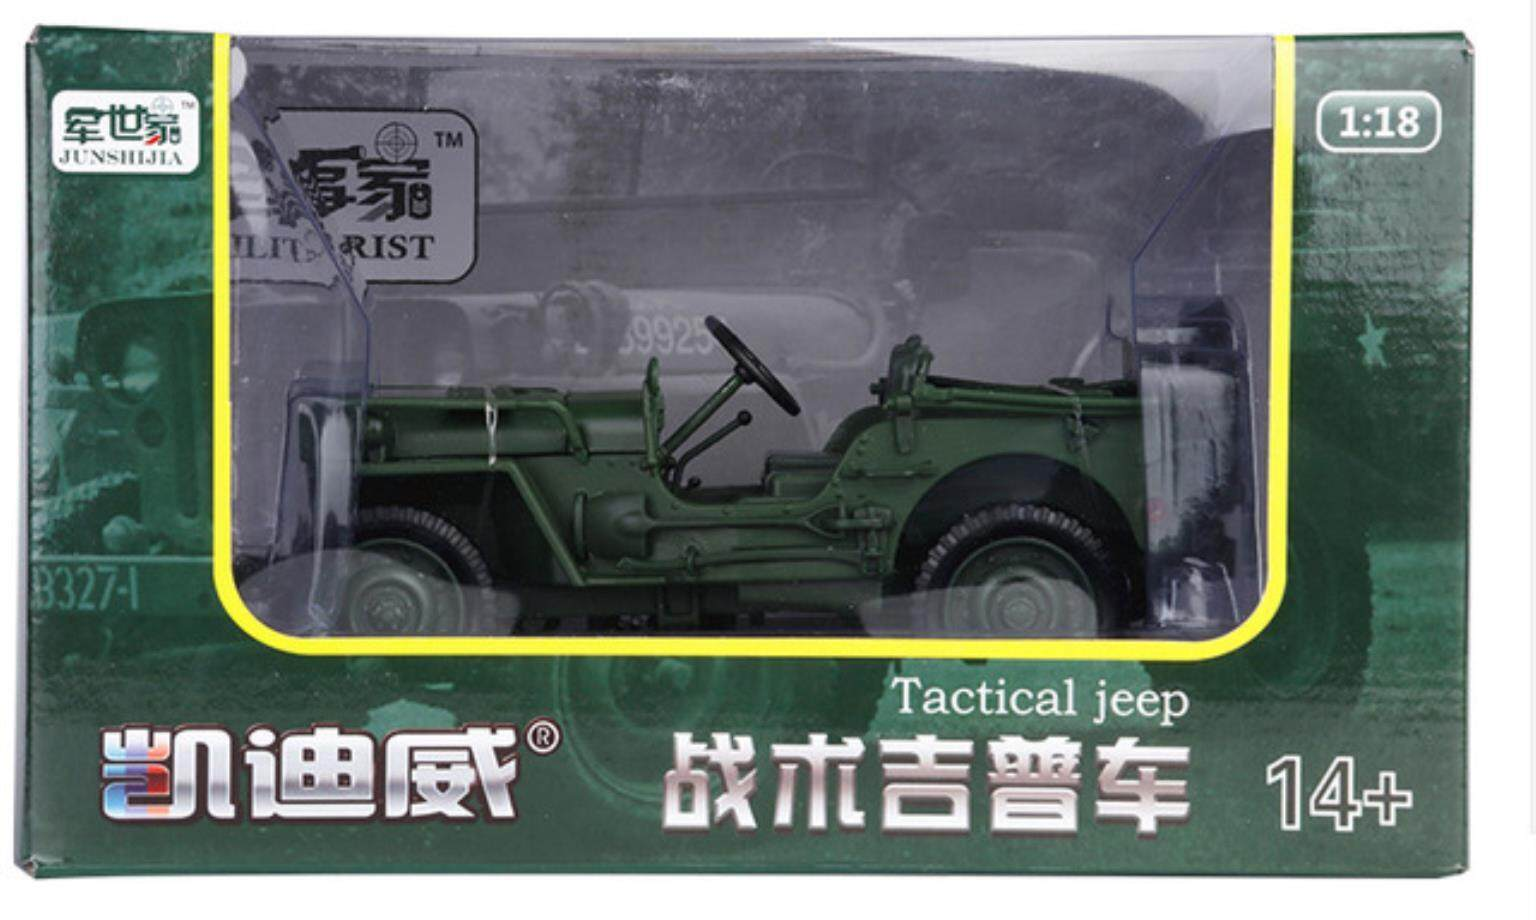 1//18 Tactical Military Car Diecast Model World War II Vehicle Toy Home Decor